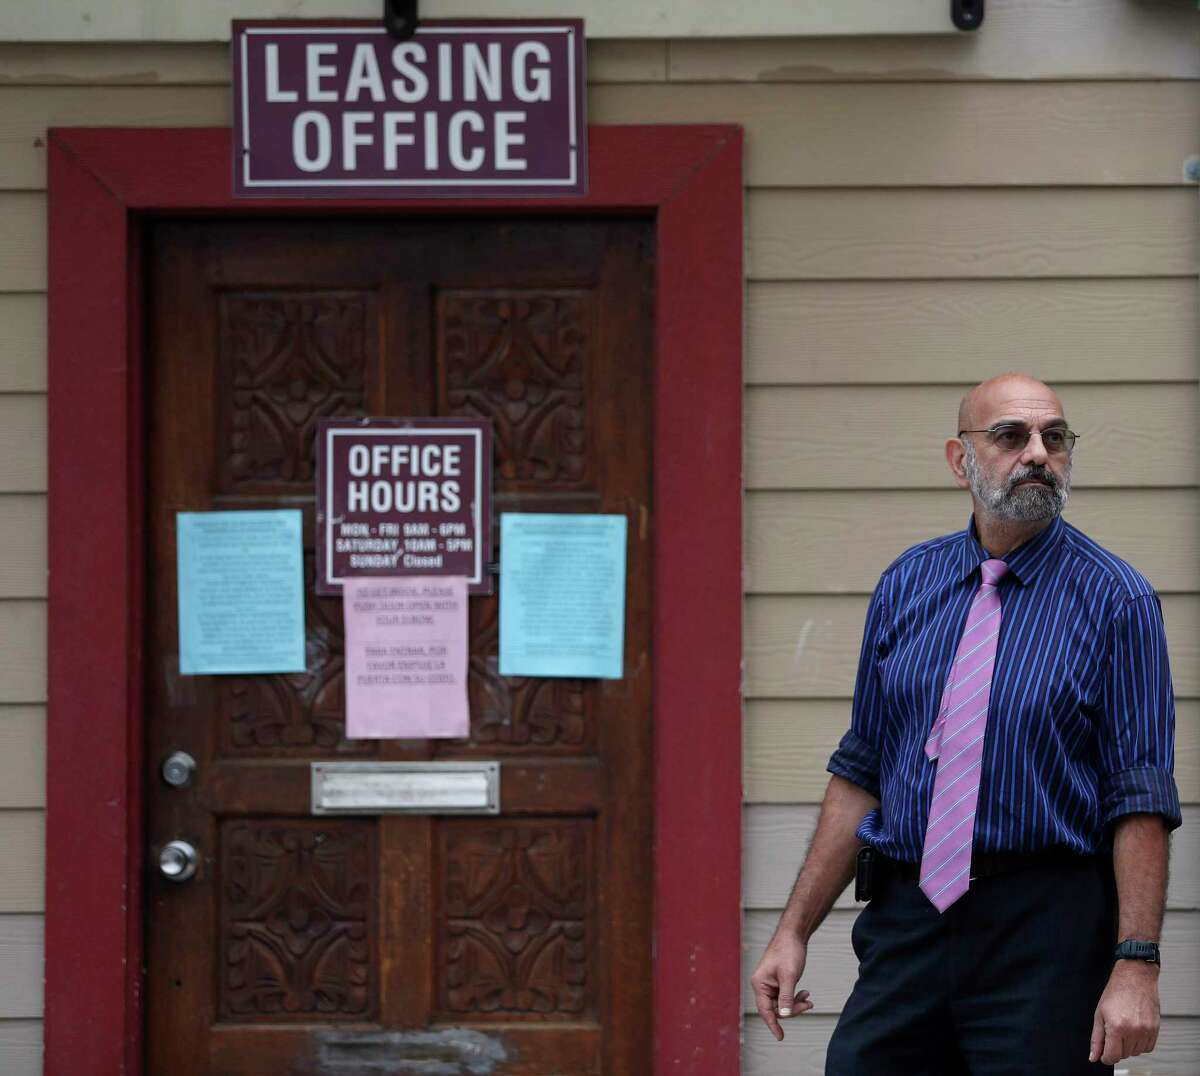 Landlord Jack Yetiv stands outside of the leasing office at the Westview Forest apartment complex.